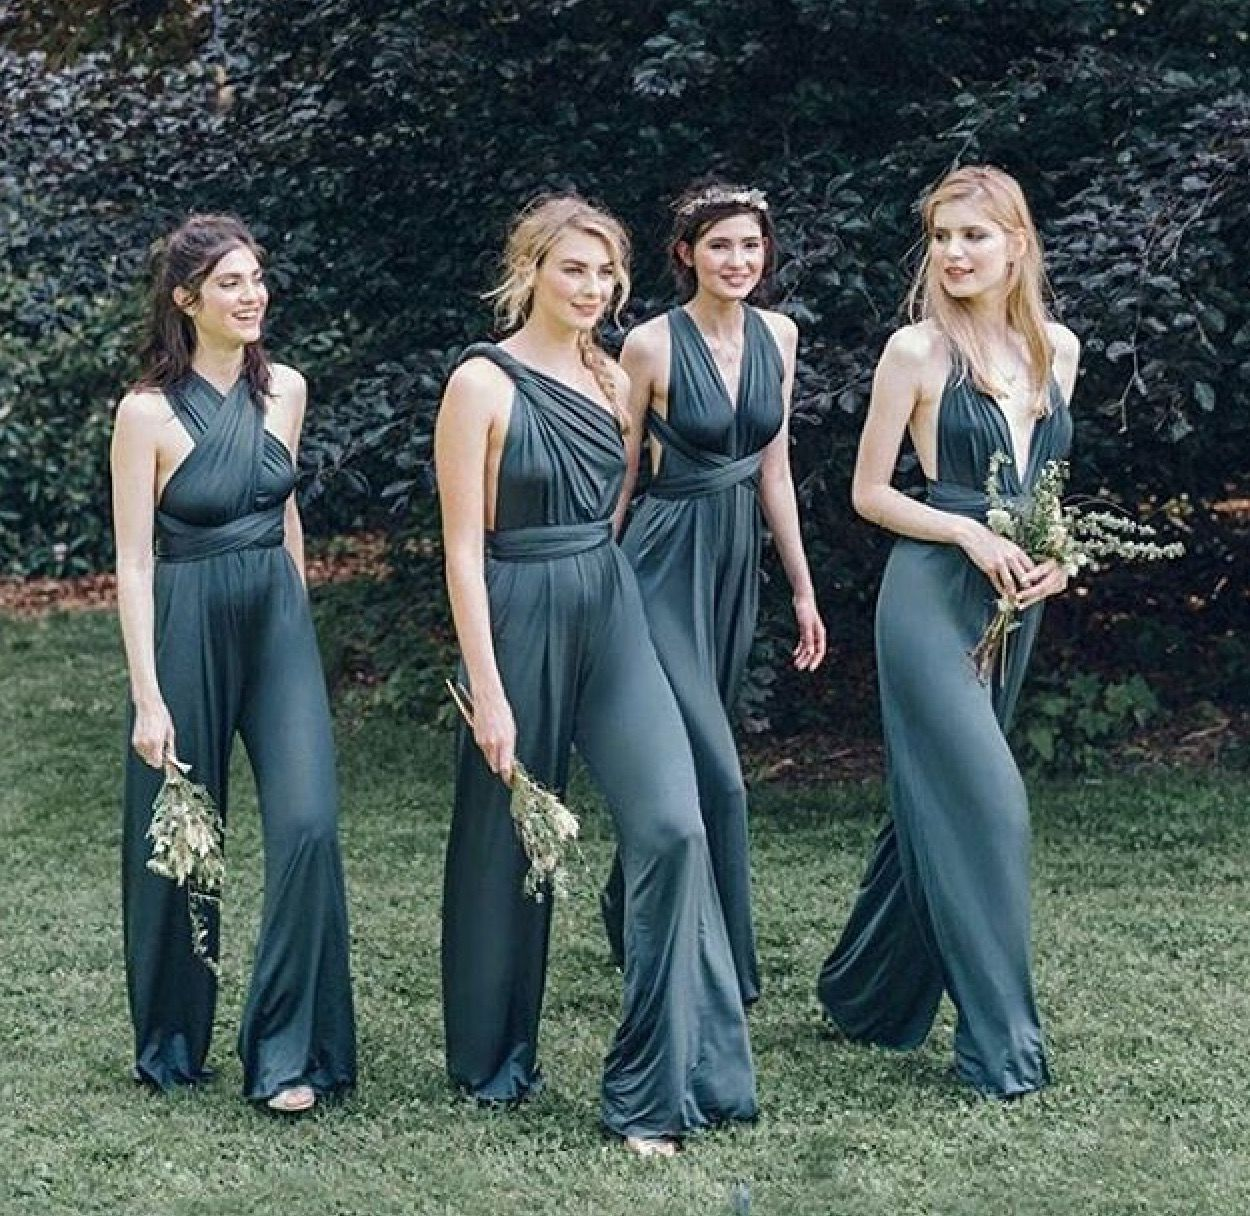 What Colours Not To Wear To A Wedding: Bridesmaids Jumpsuits. Not A Big Fan Of The Matchy Matchy